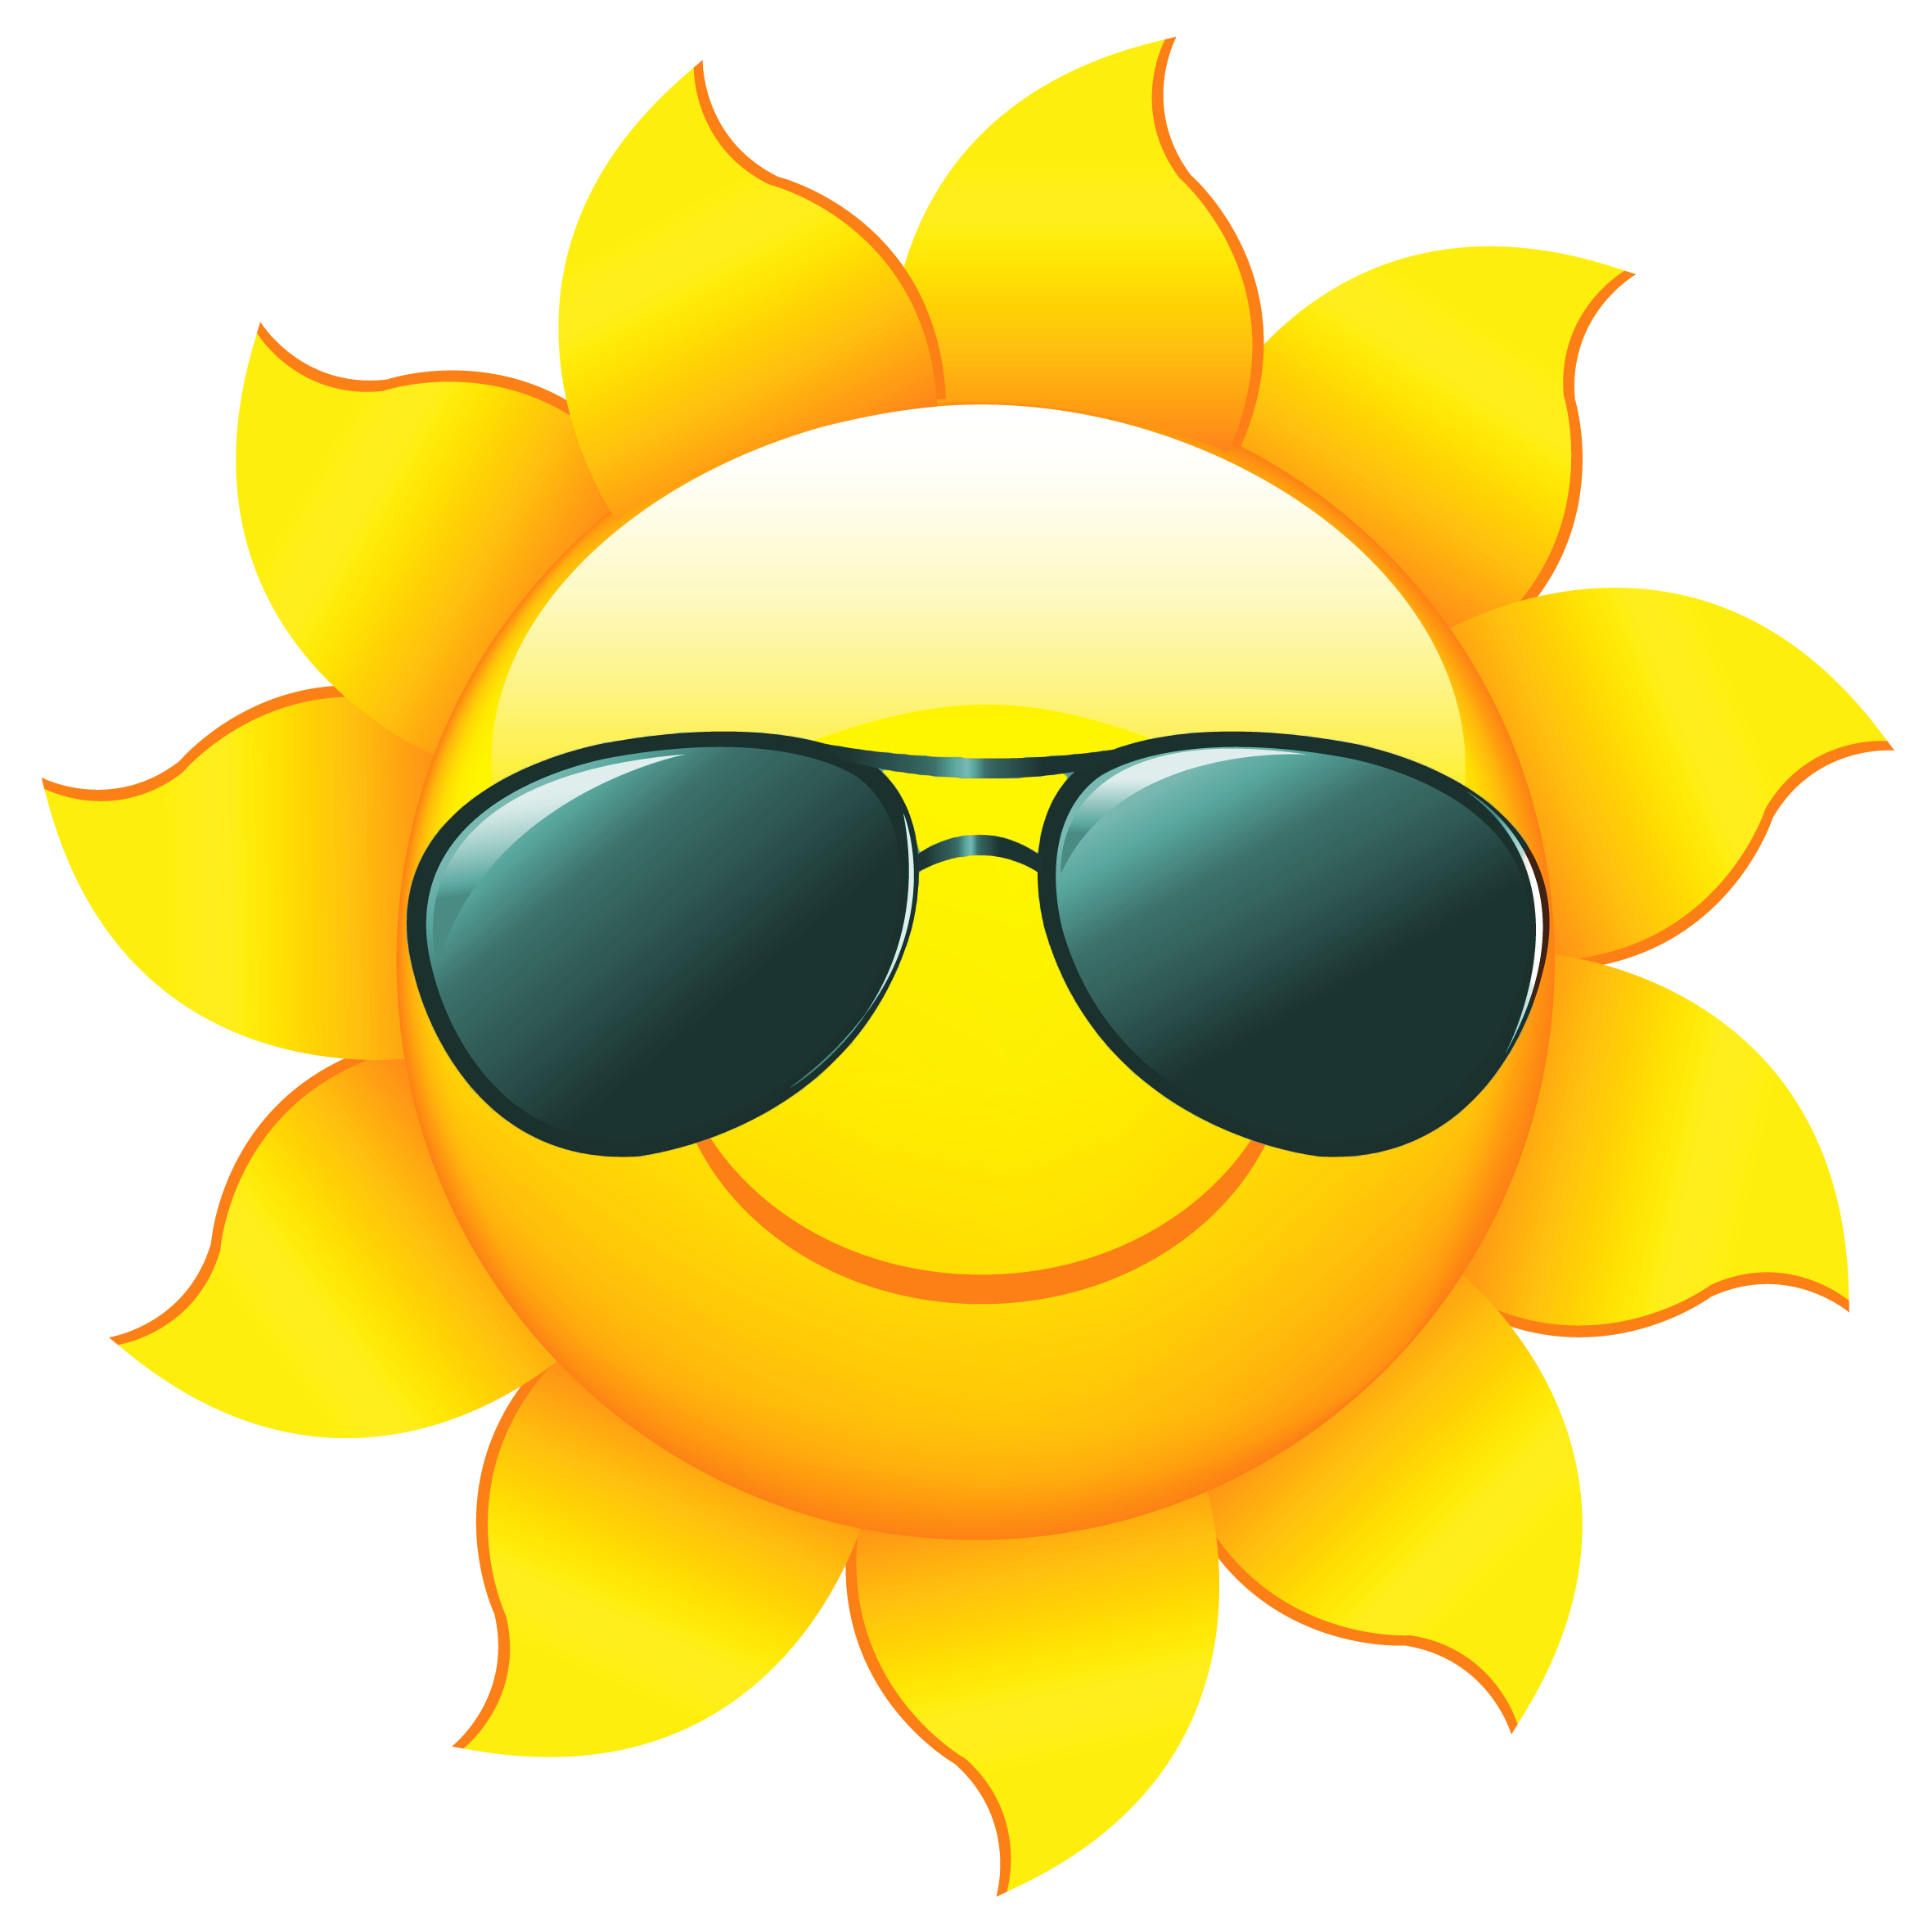 Mexican Sun Clipart | Free download best Mexican Sun Clipart on ...